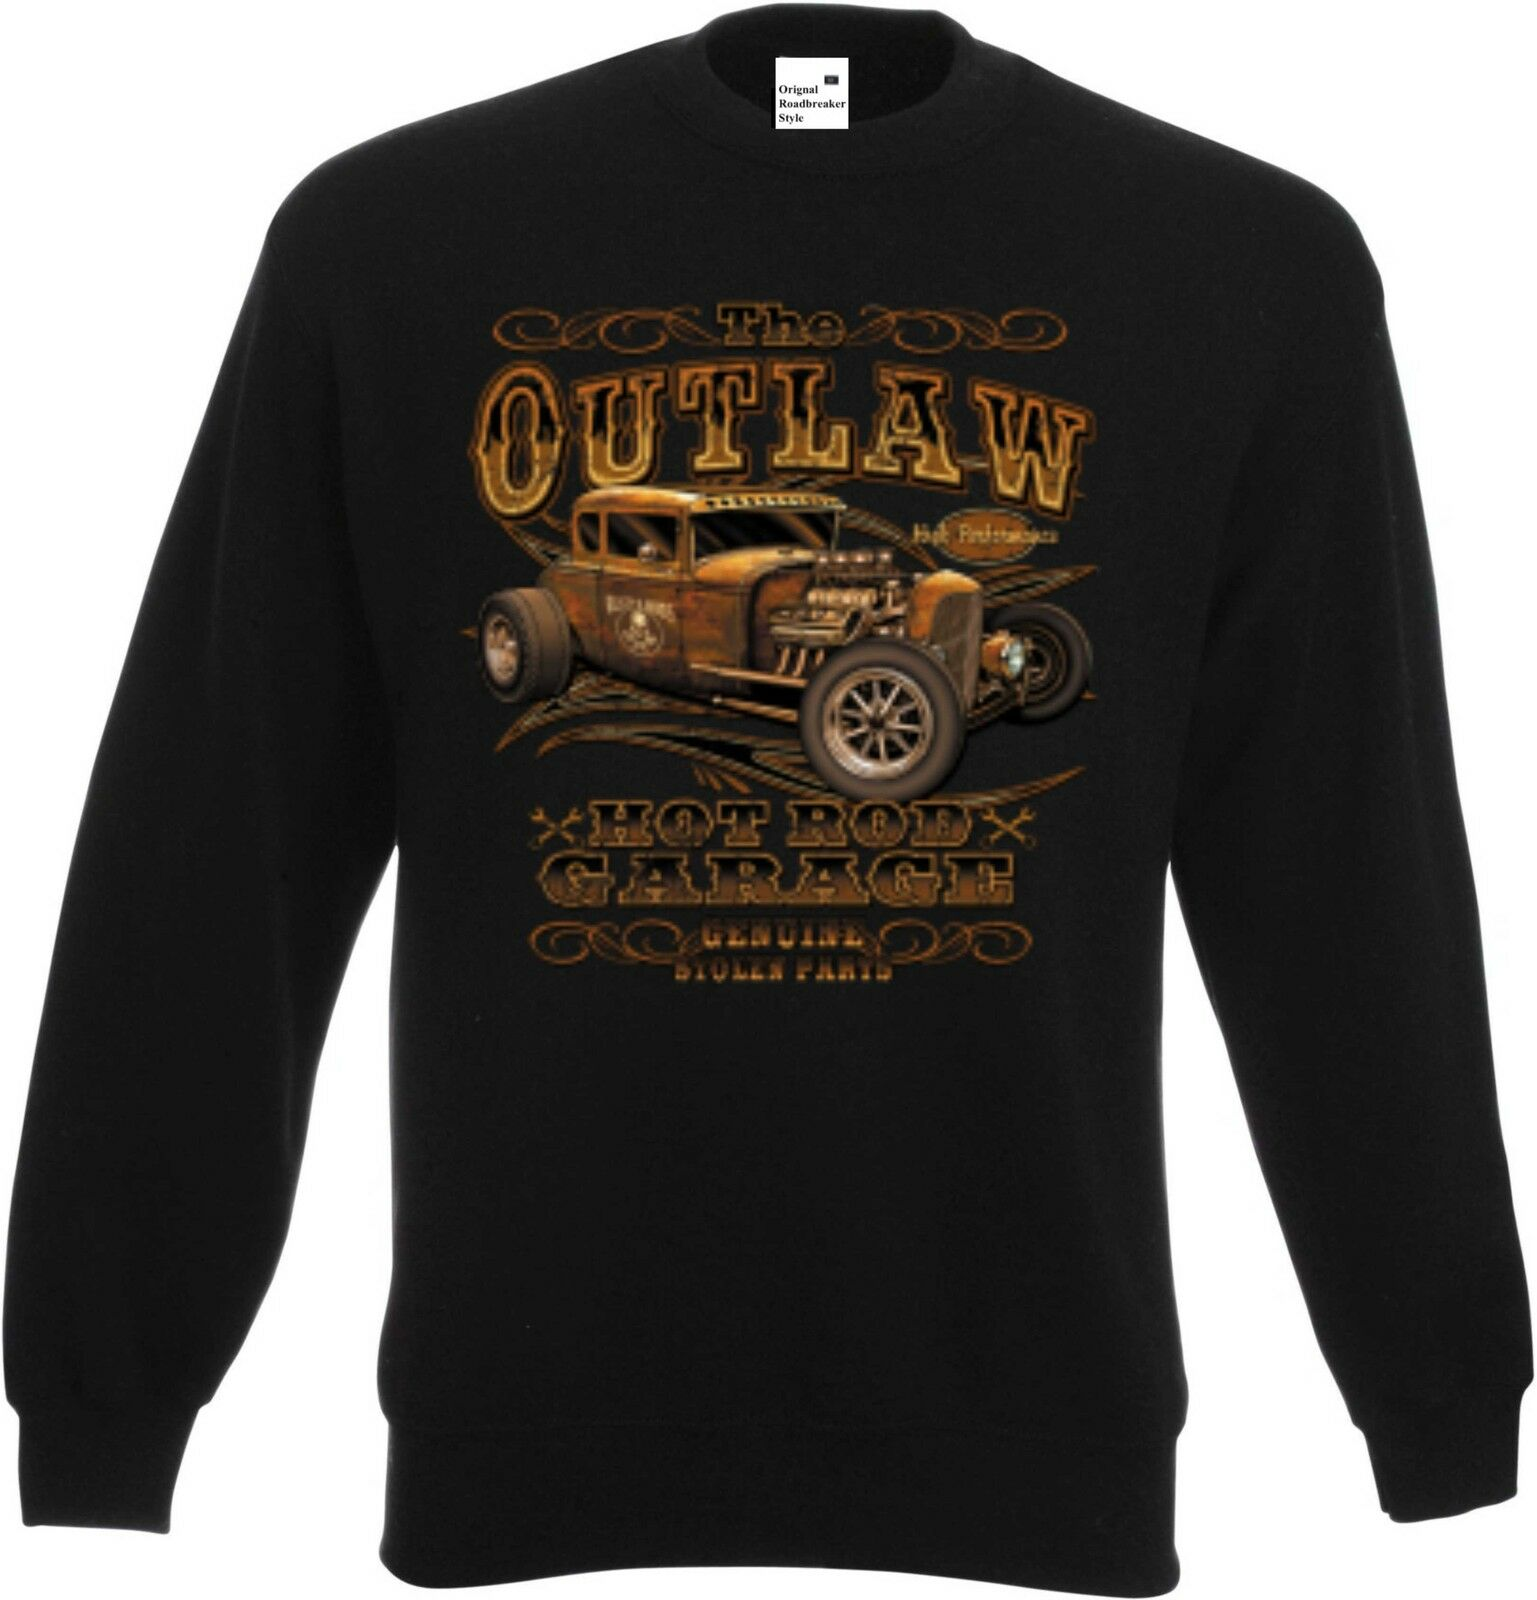 Sweatshirt black V8-,Hot Rod-,US Car-& `50 Stylemotiv Modell The Outlaw